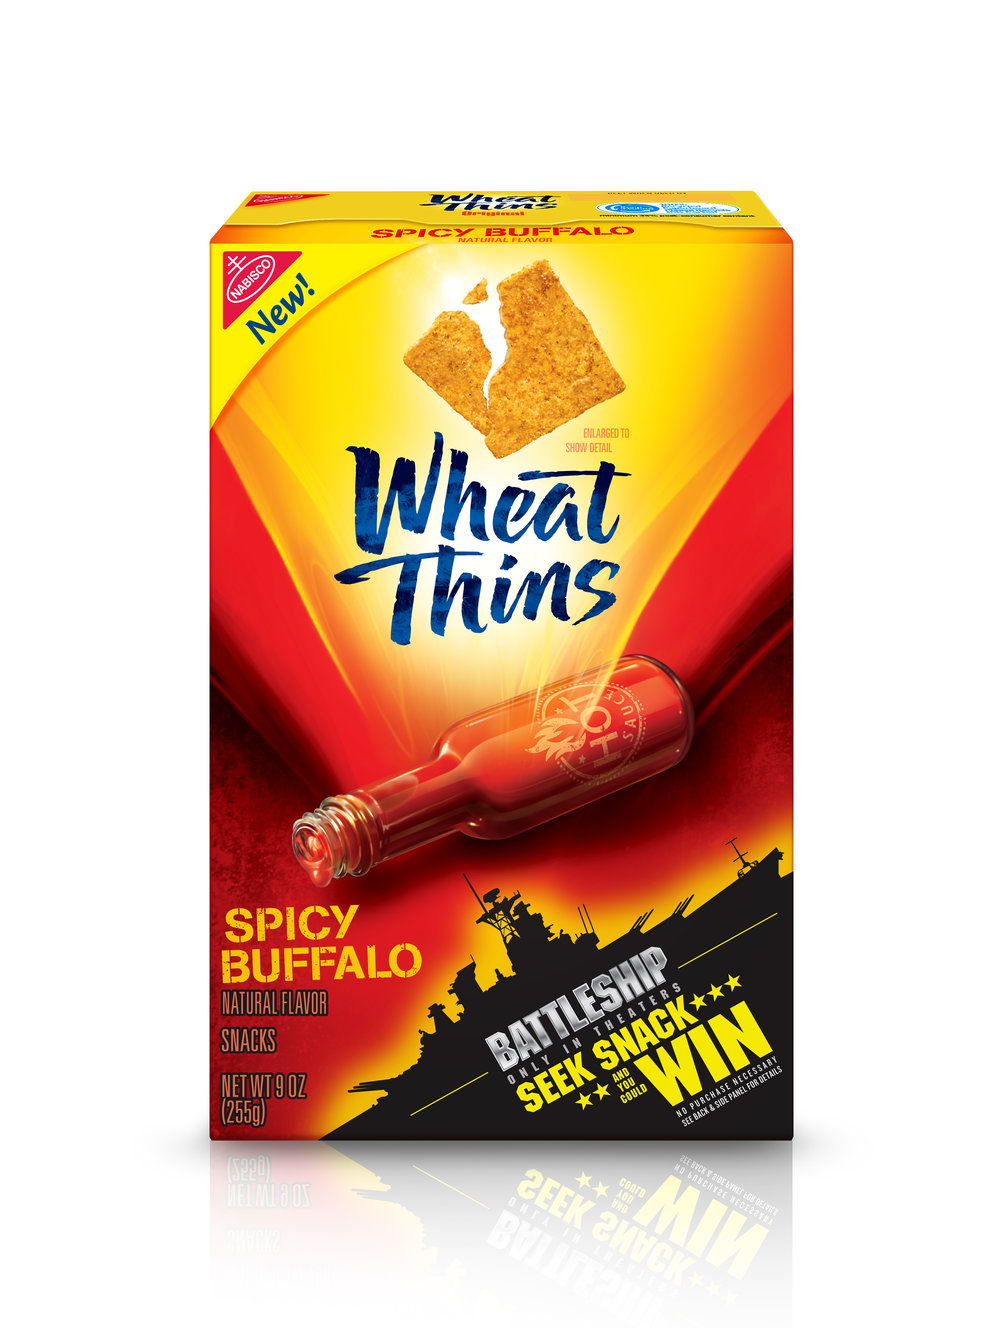 Battleship_Wheat_Thins_SpicyBaffalo.jpg